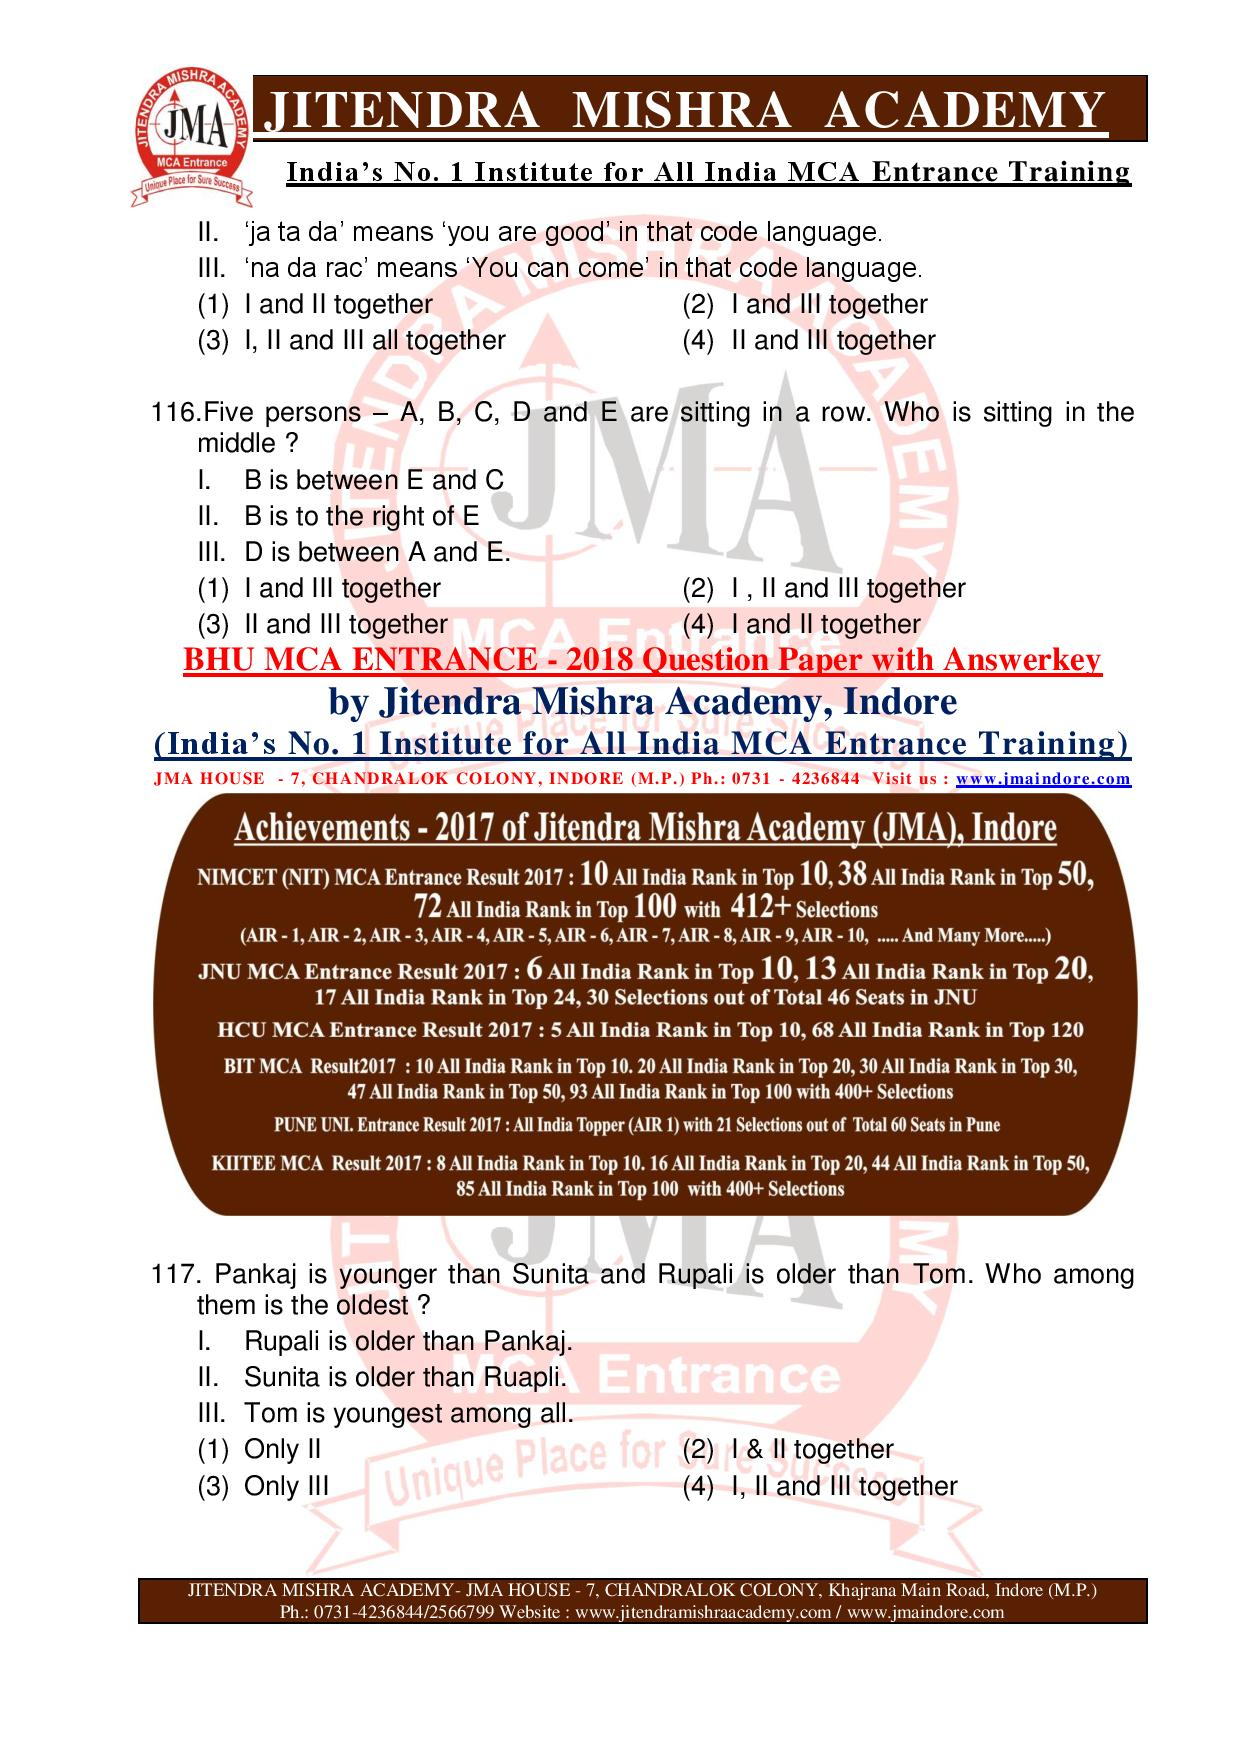 BHU MCA 2018 QUESTION PAPER12-page-037